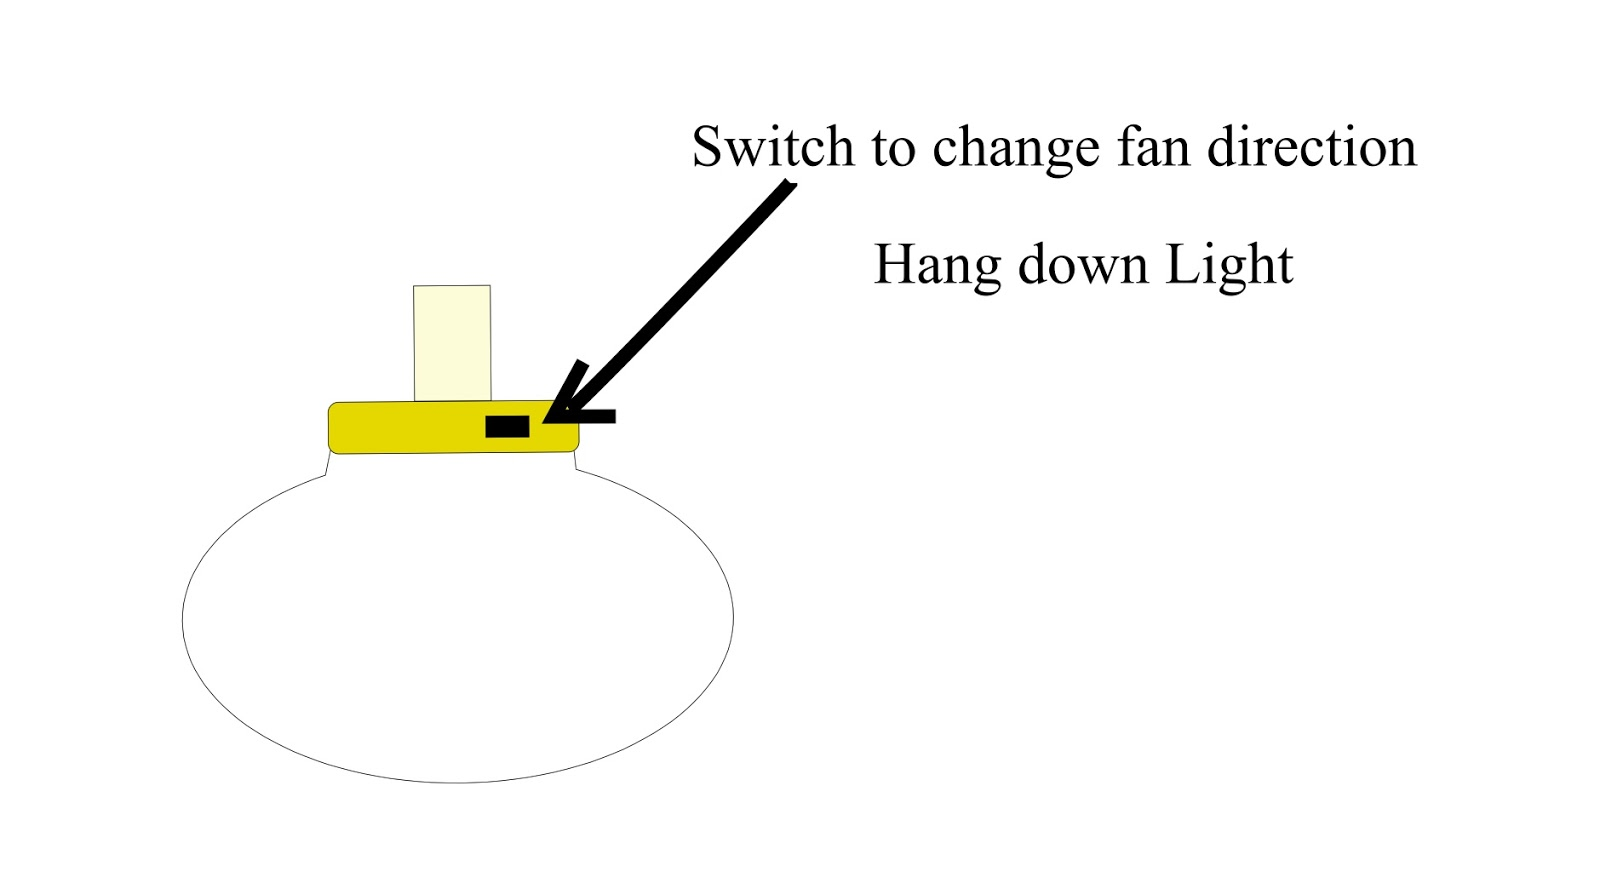 Ceiling Fan Direction Summer And Winter Switch To Change